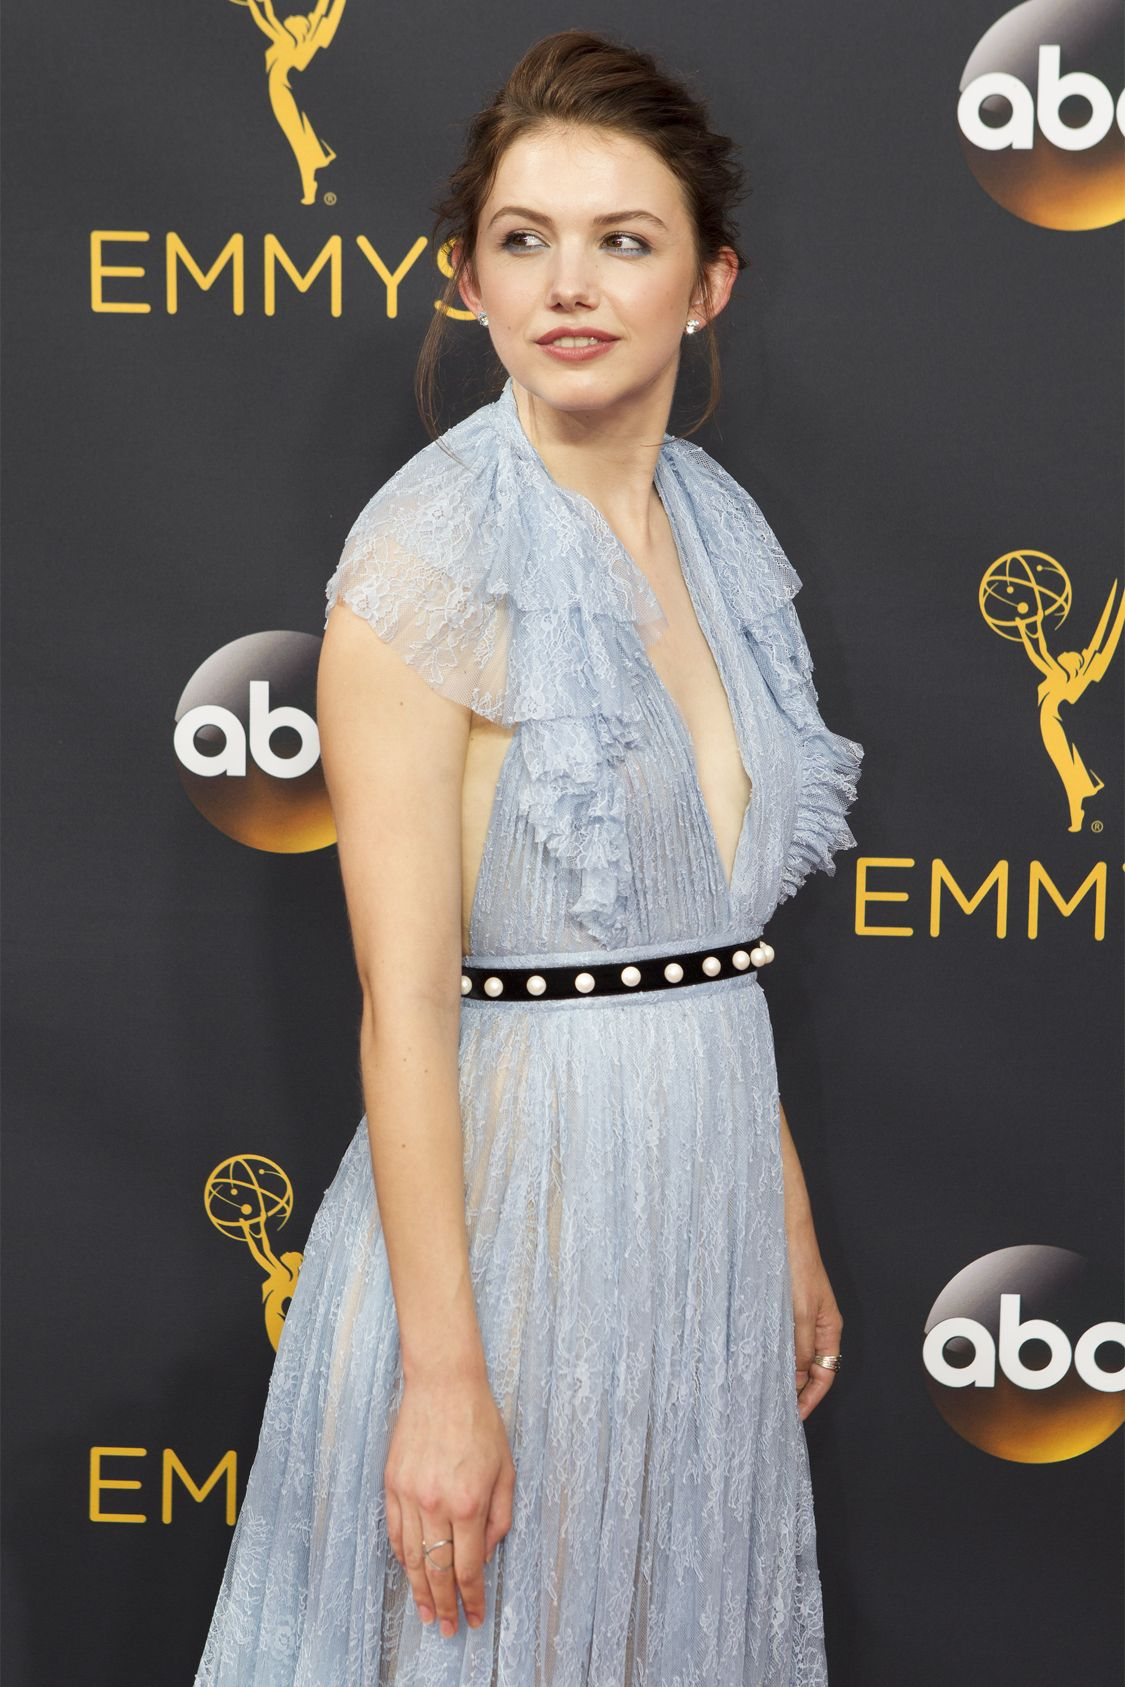 """THE 68TH EMMY(r) AWARDS - """"The 68th Emmy Awards"""" broadcasts live from The Microsoft Theater in Los Angeles, Sunday, September 18 (7:00-11:00 p.m. EDT/4:00-8:00 p.m. PDT), on ABC and is hosted by Jimmy Kimmel. (ABC/Rick Rowell) HANNAH MURRAY"""